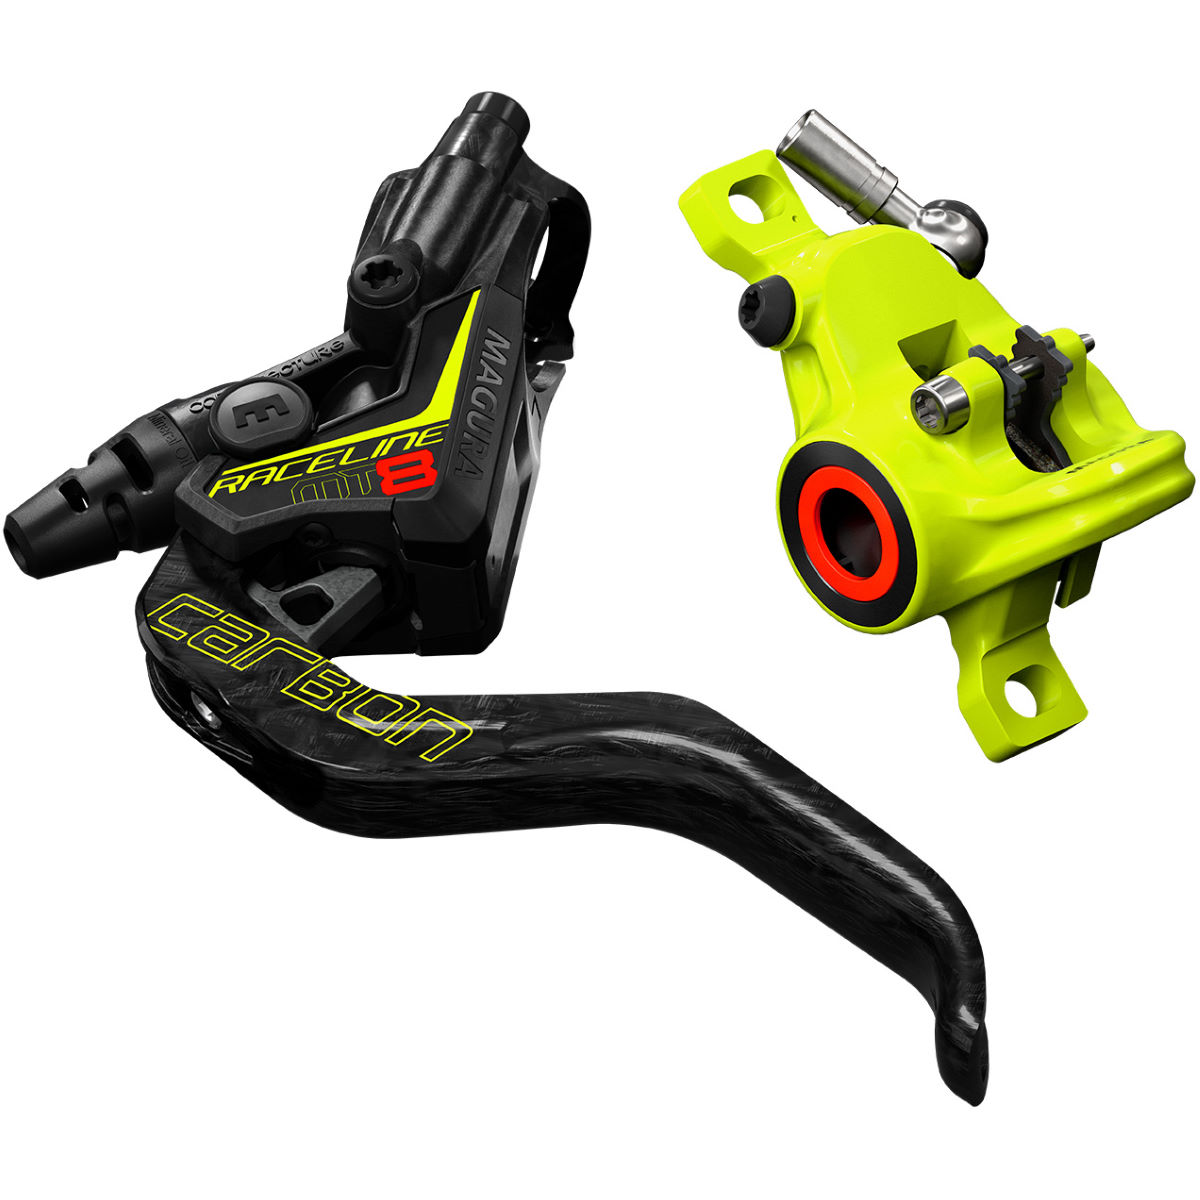 Magura MT8 Carbon Disc Brake - Frenos de disco